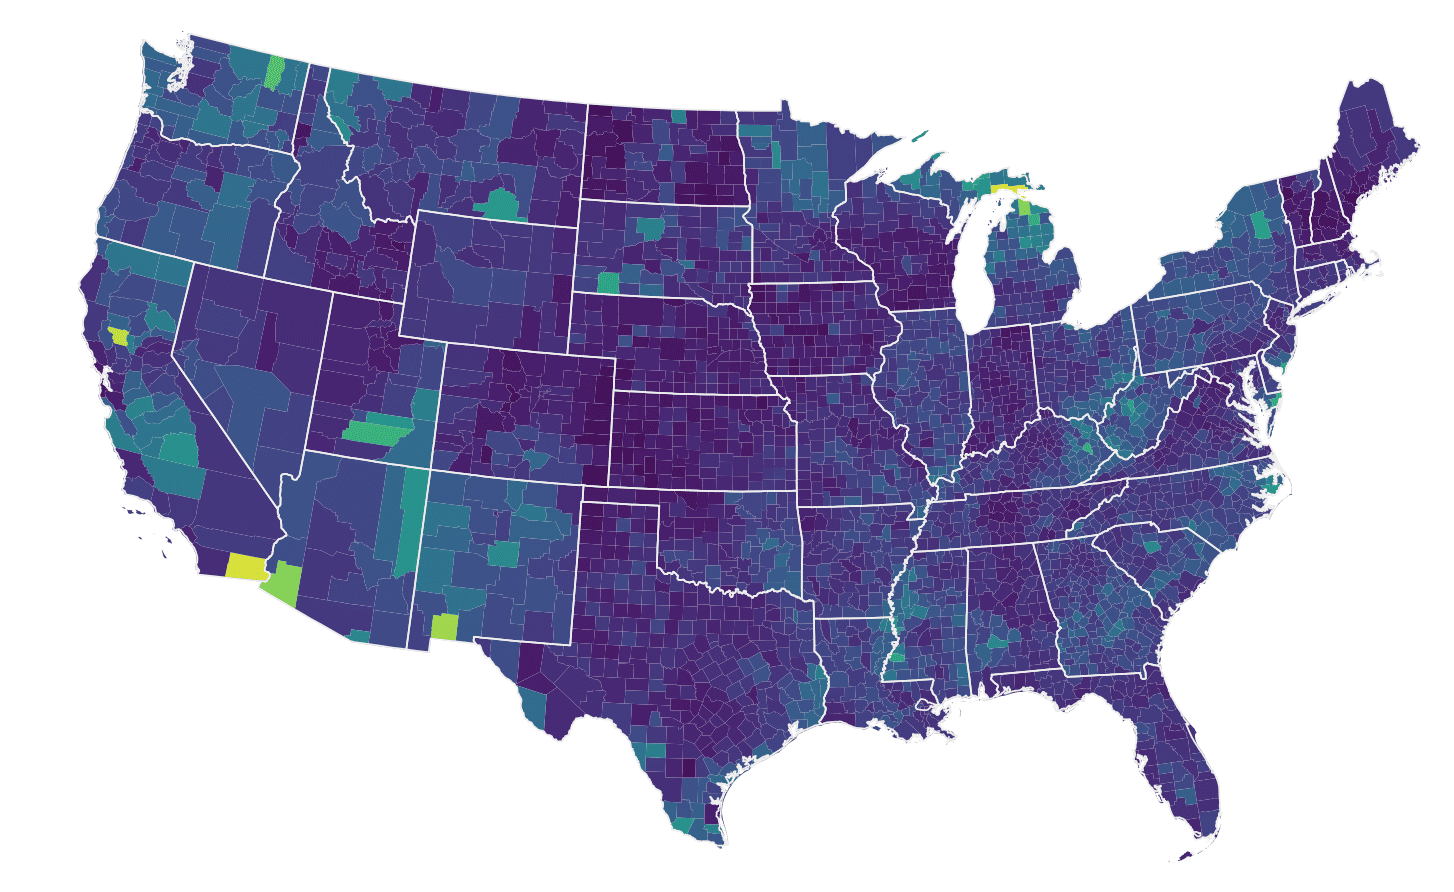 A detailed map of the USA that shows how ggplot2 can create complex data visualizations.